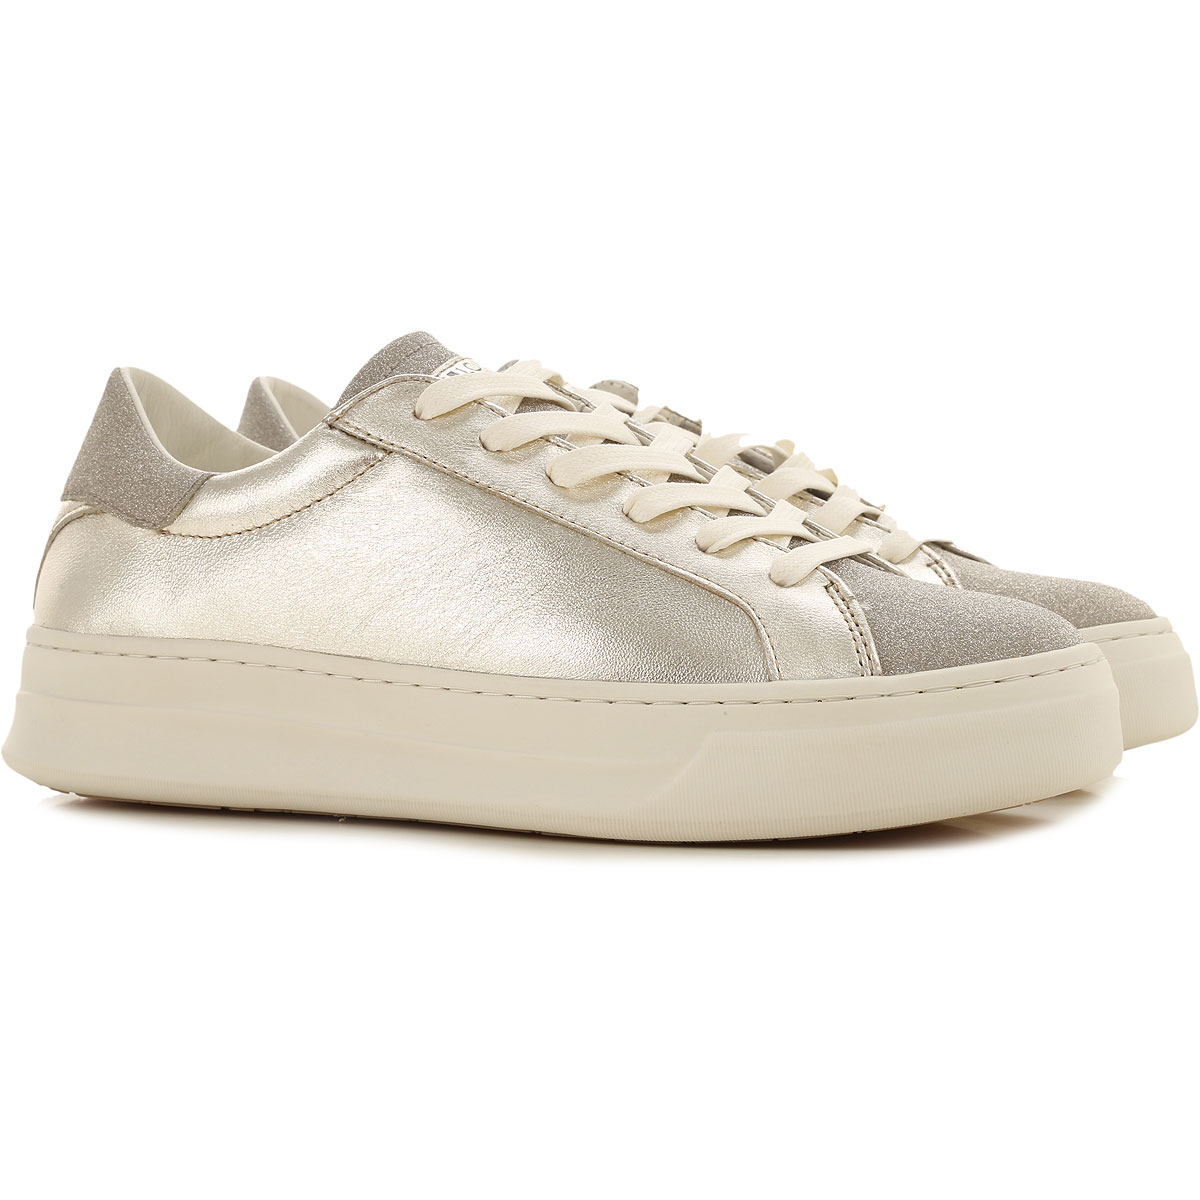 Crime Sneakers for Women On Sale, Platinum, Leather, 2019, 10 6 7 8 9